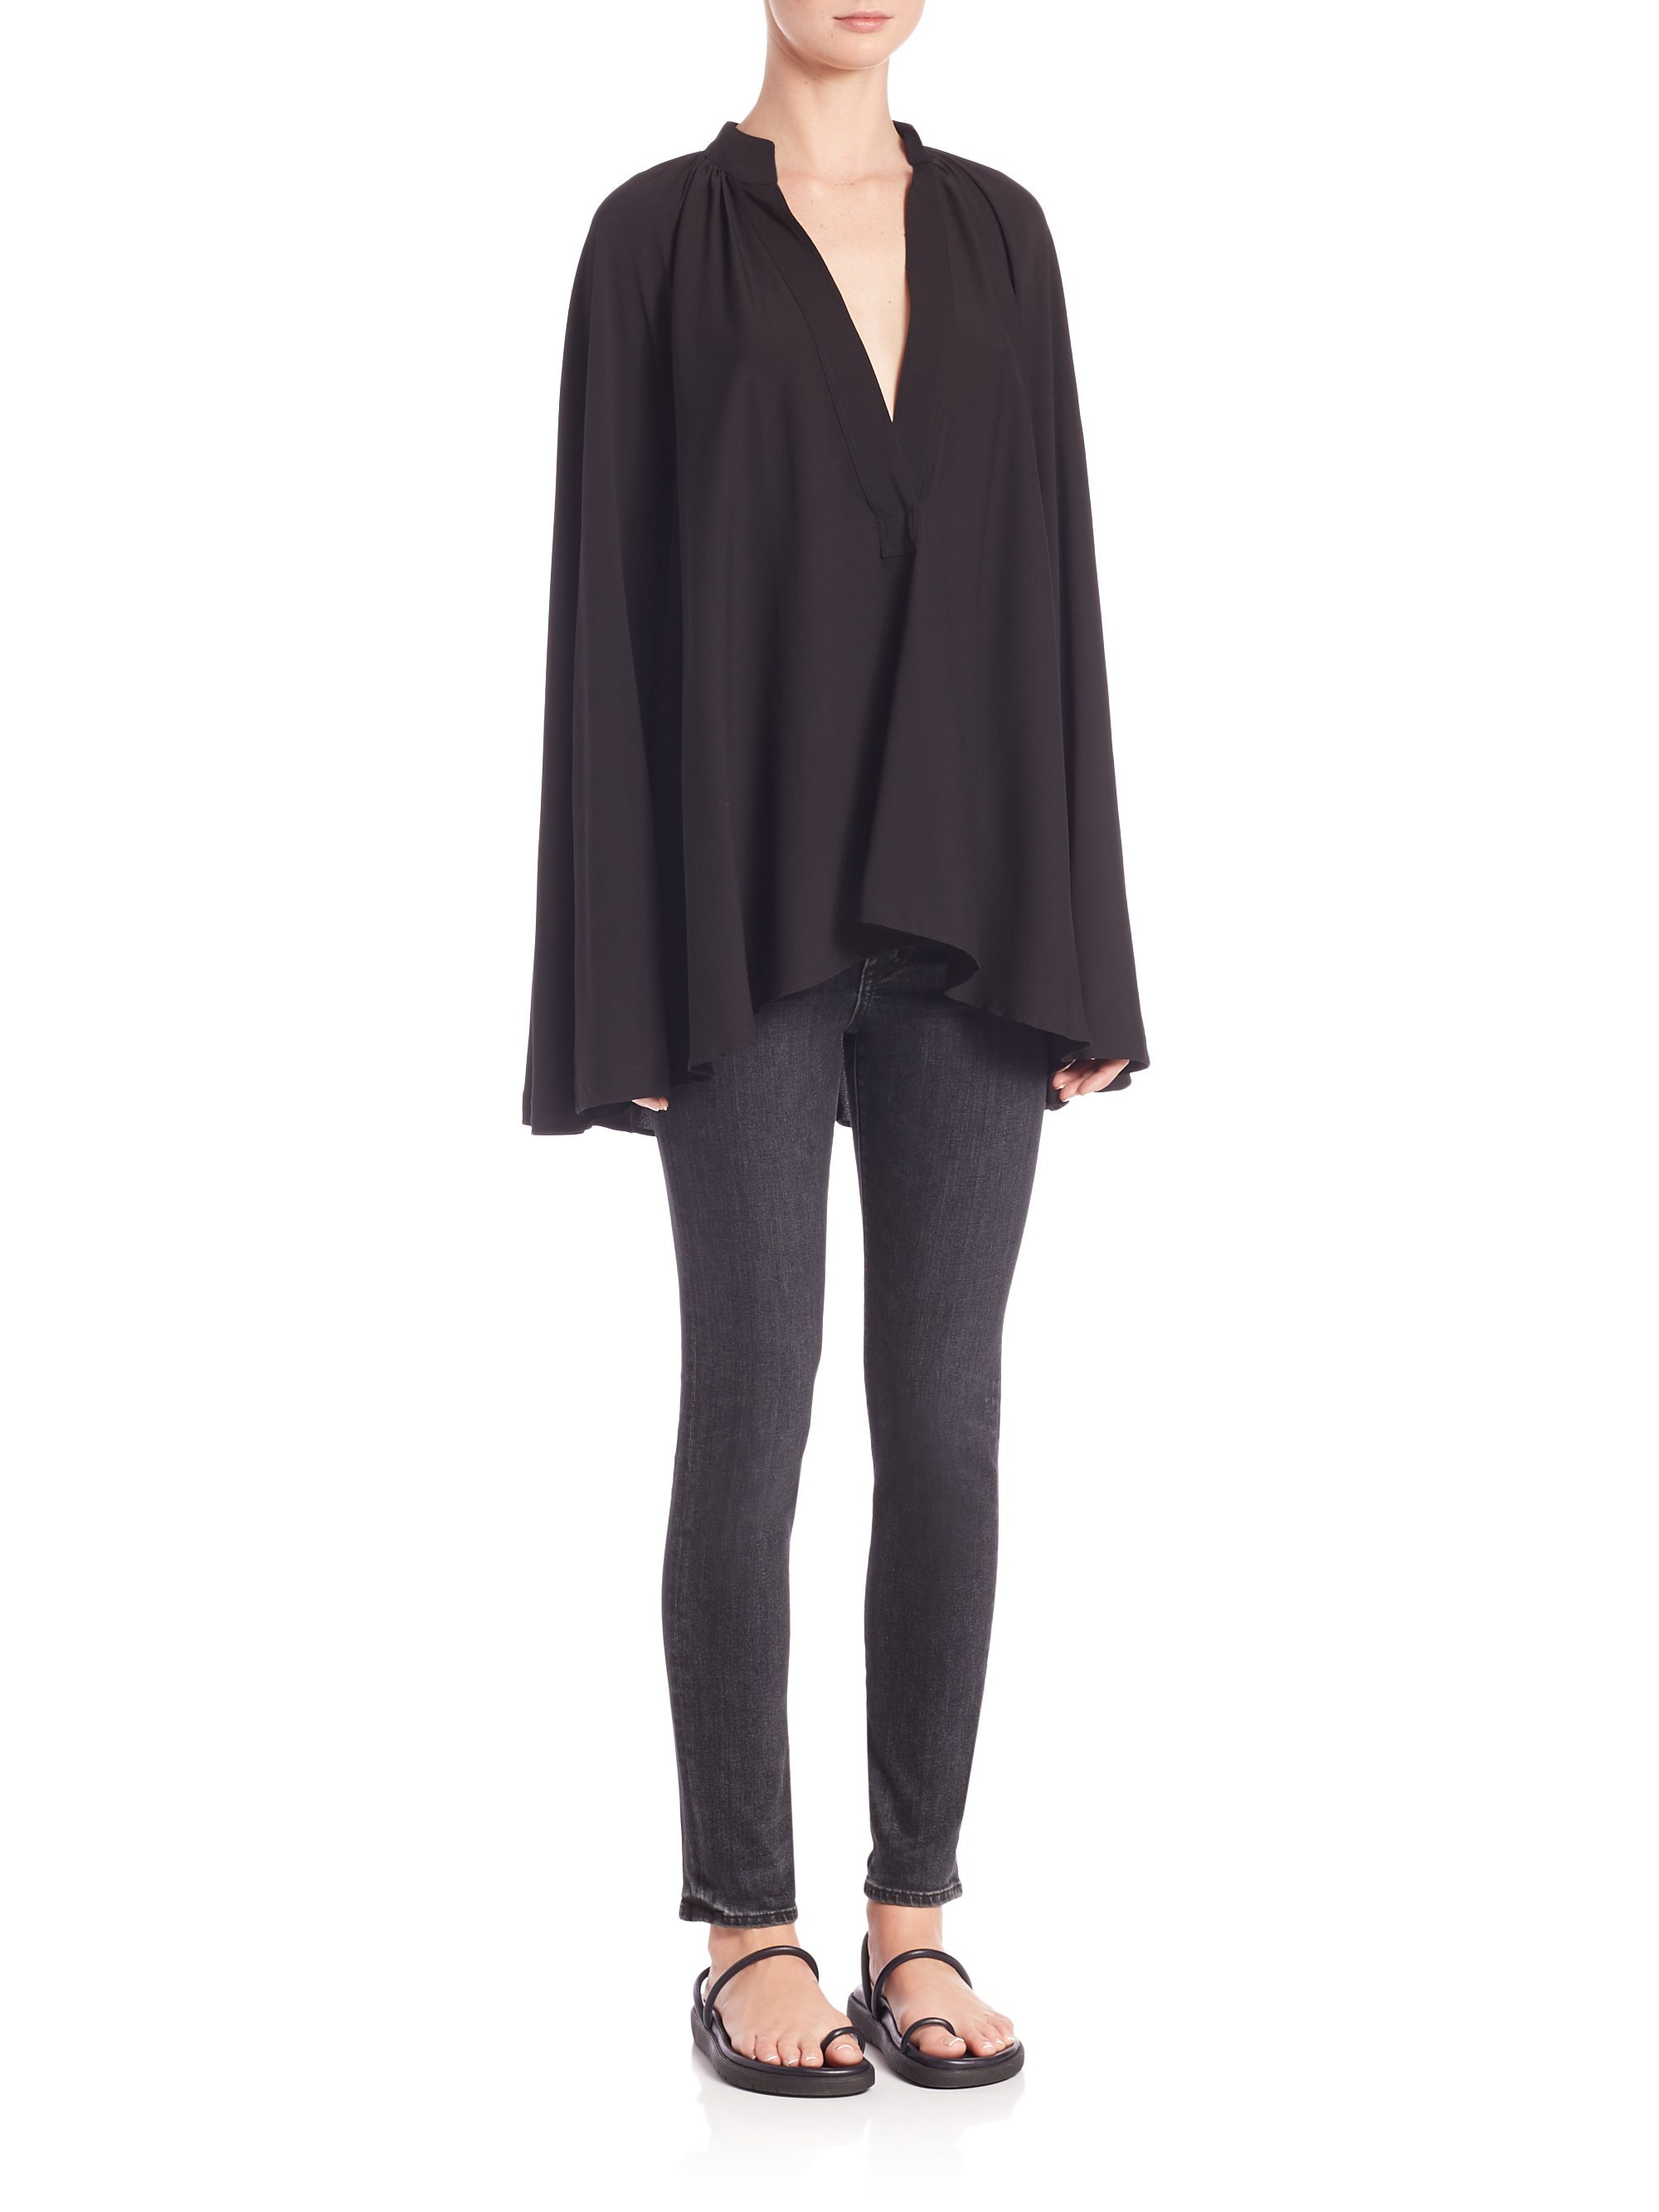 975ccc34e49694 Lyst - Helmut Lang Stretch Silk Blouse in Black